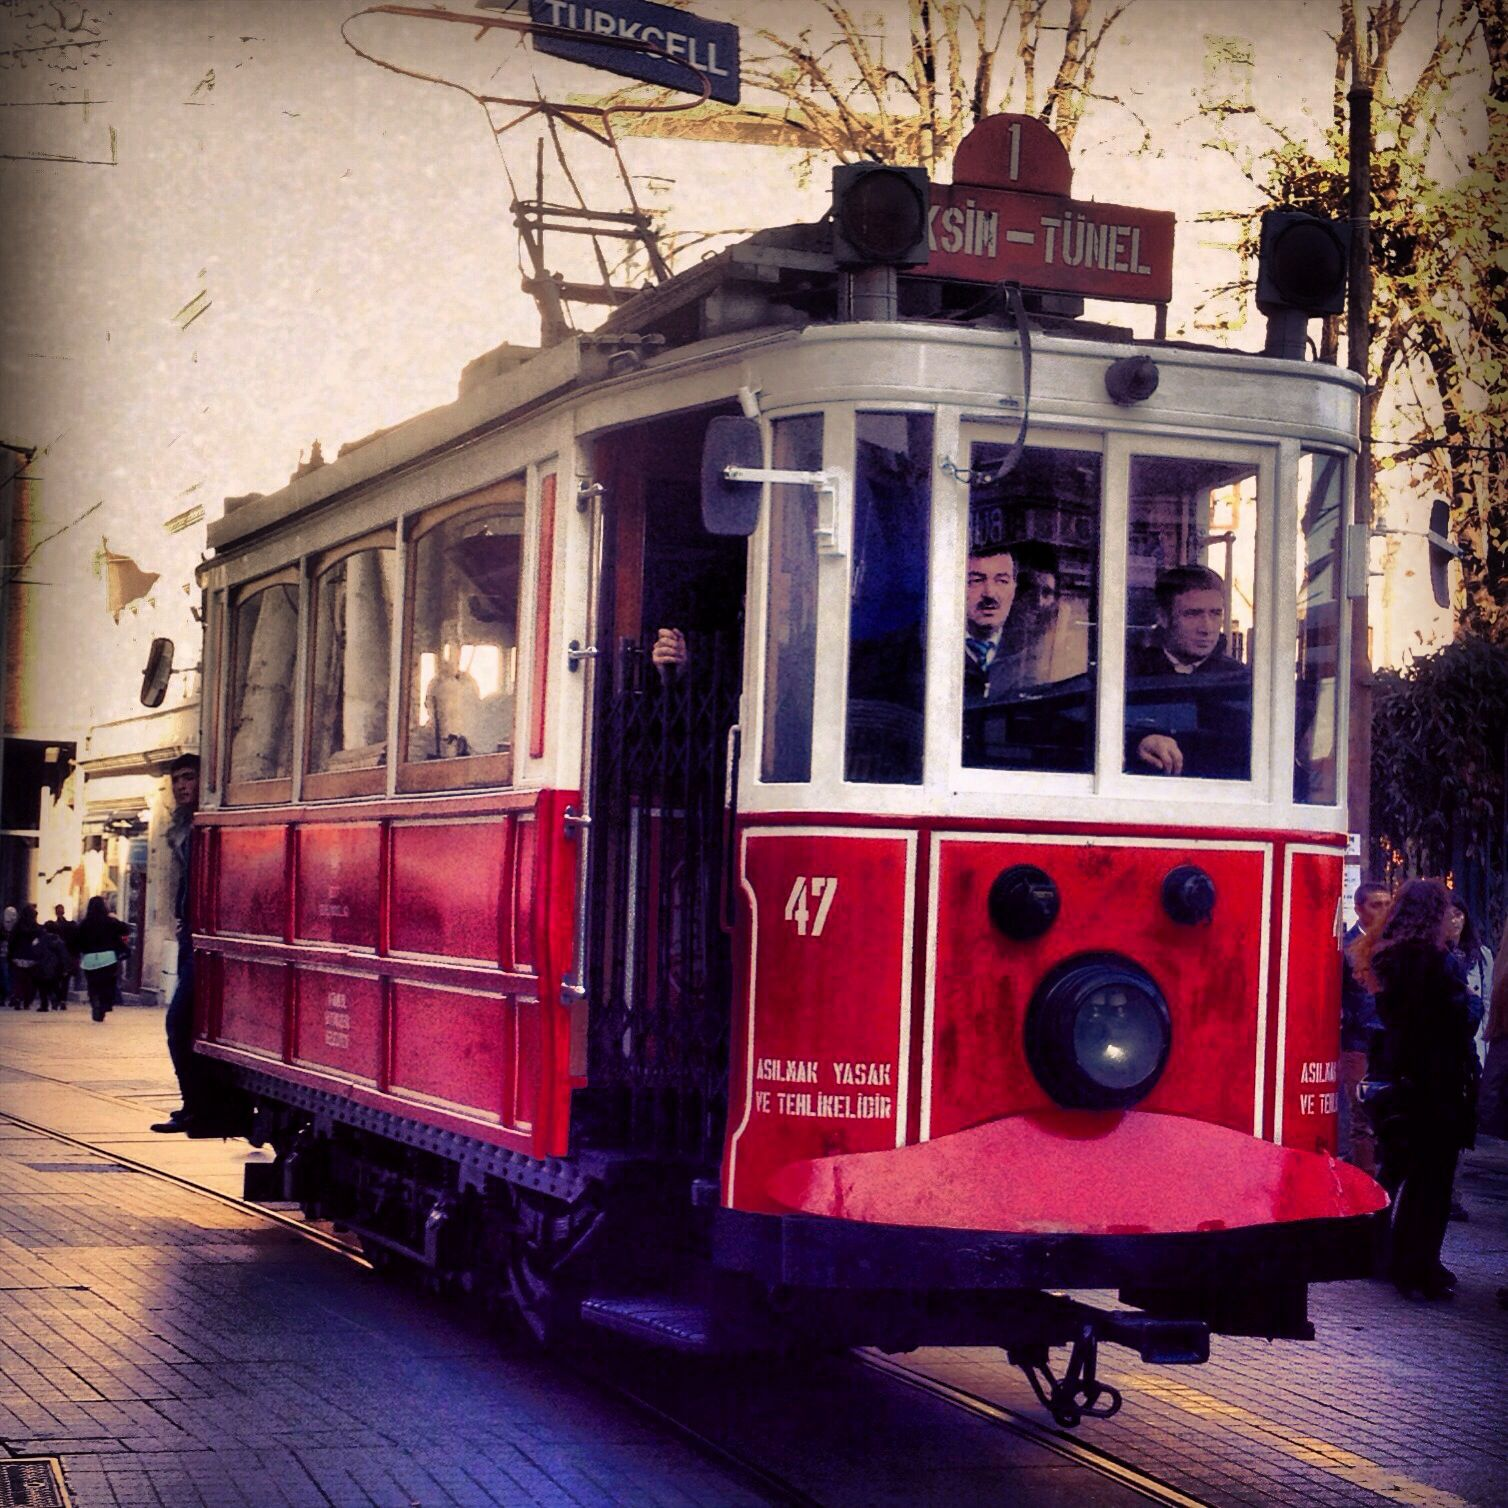 Istanbul #tram #transport #center #red #istiklal #caddesi #old ...